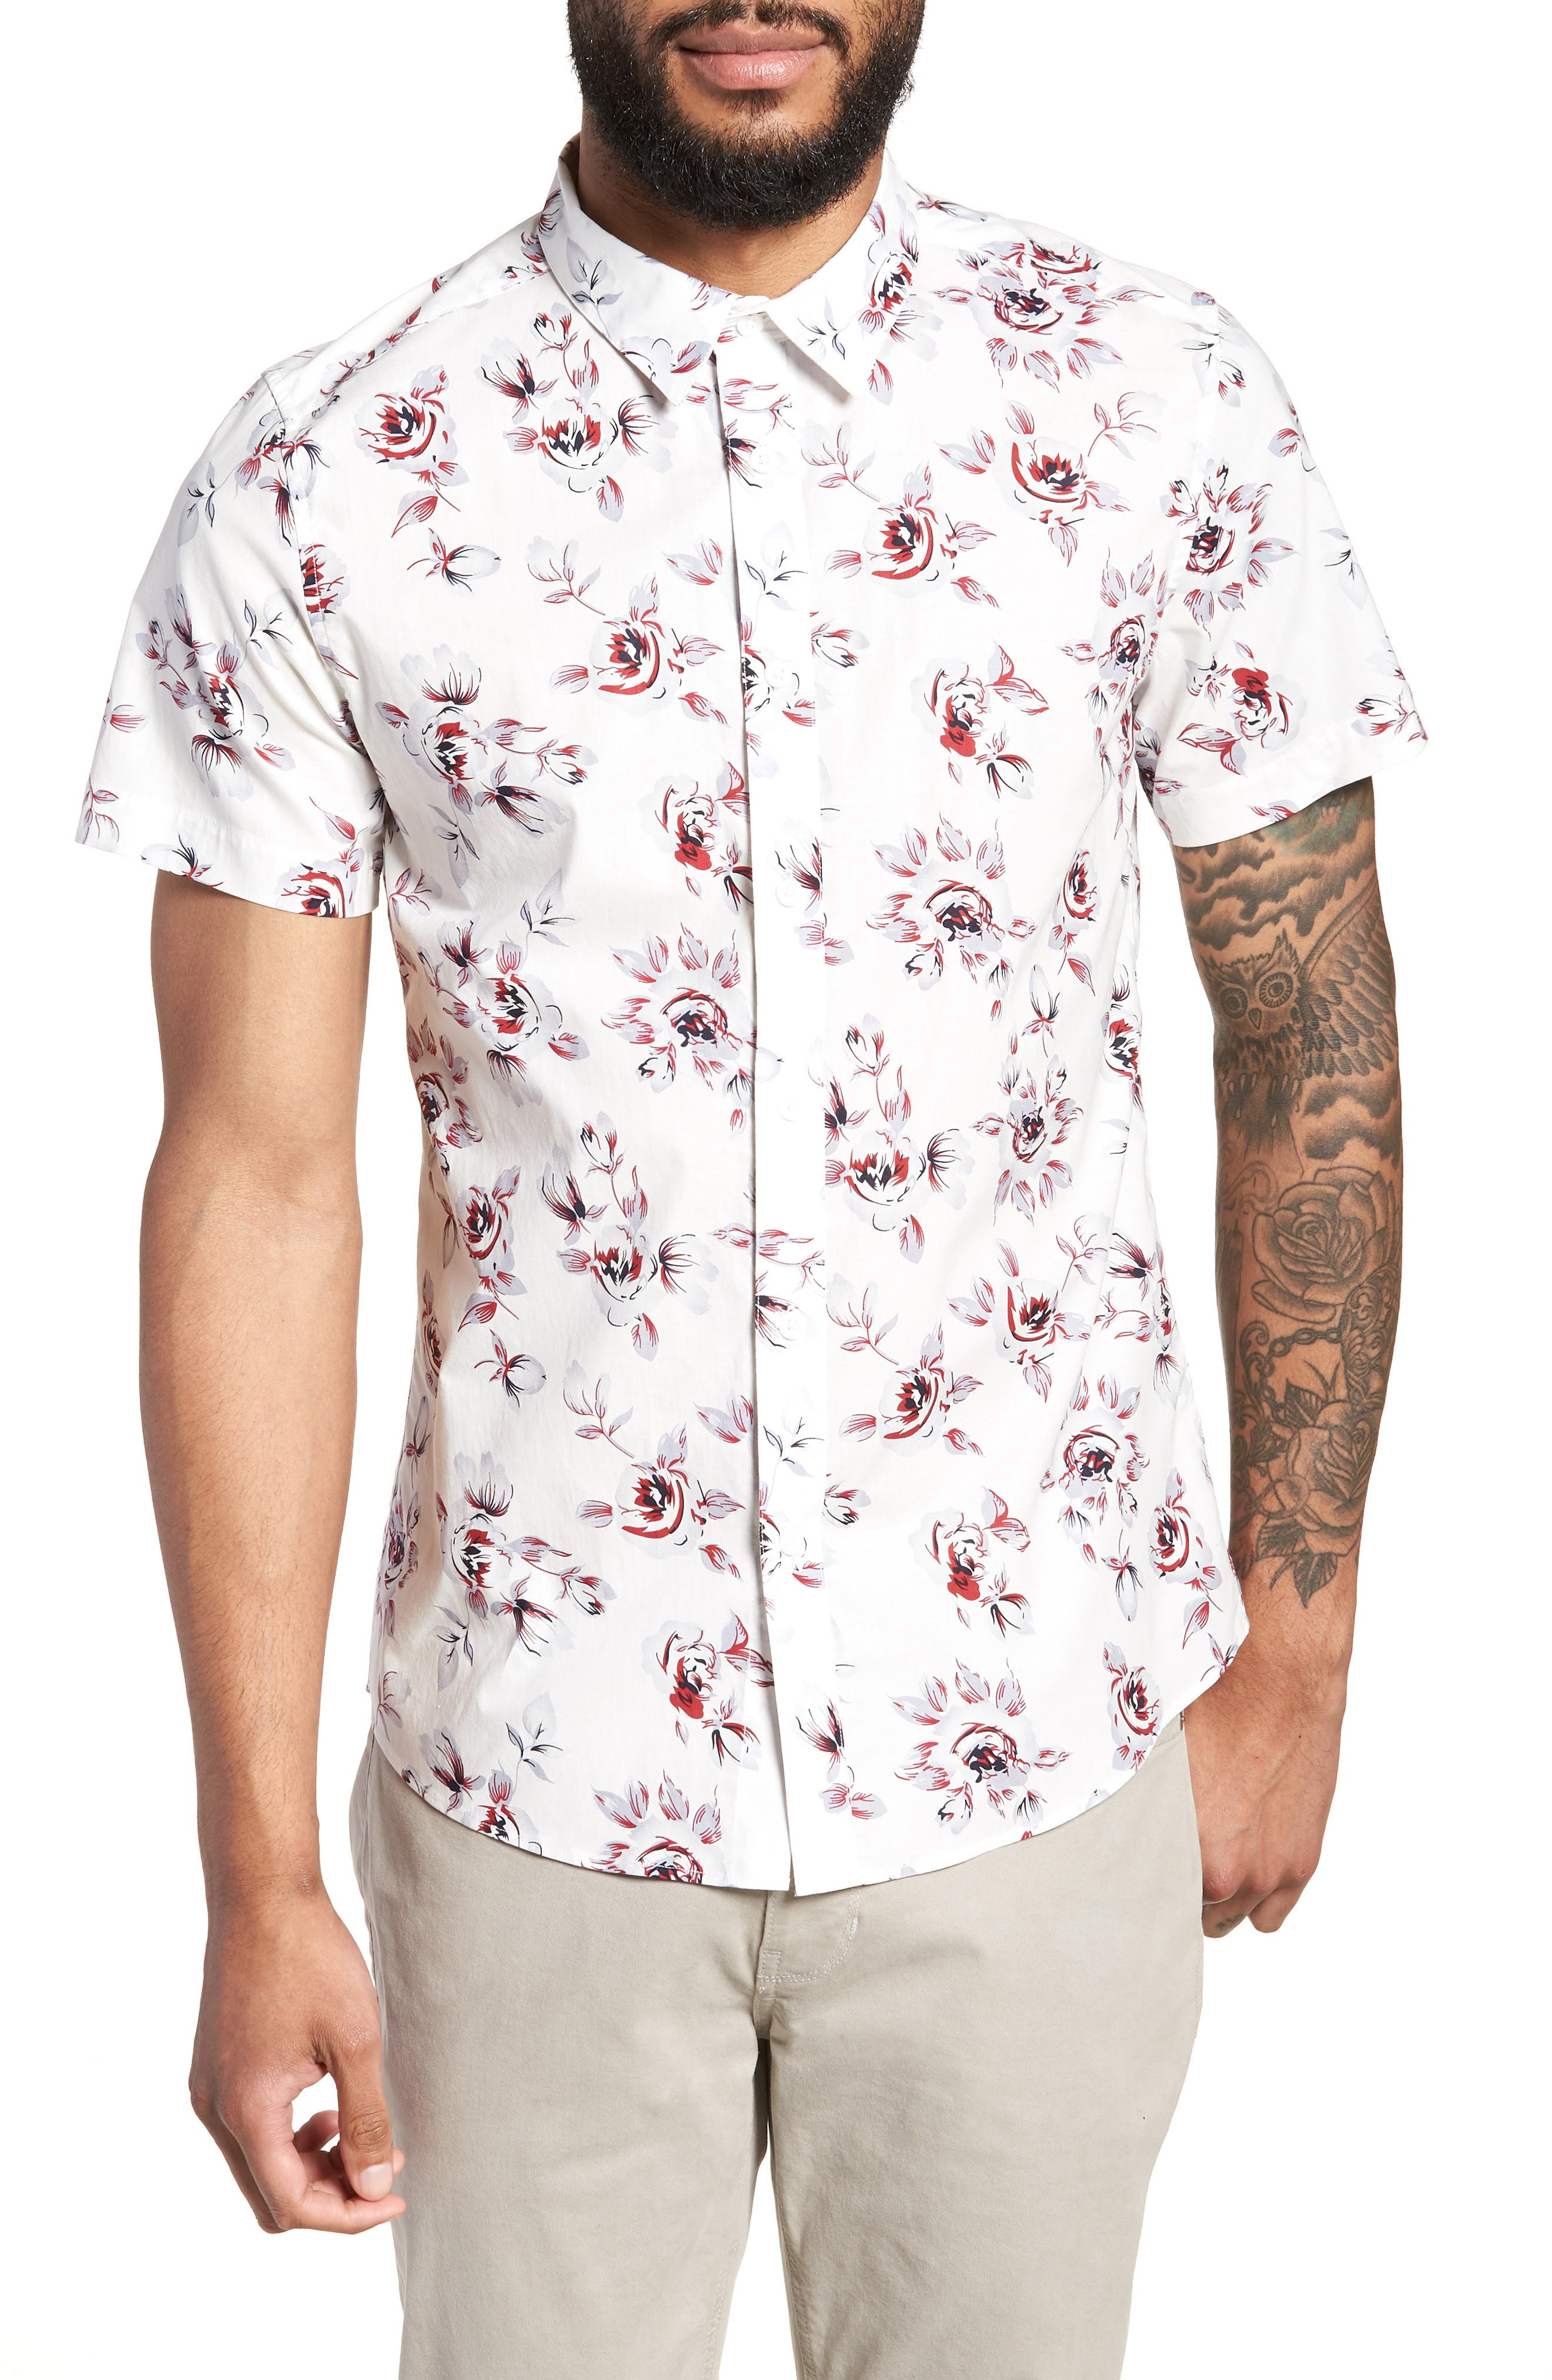 Trim Fit Print Woven Short Sleeve Shirt,                             Main thumbnail 1, color,                             White Red Rose